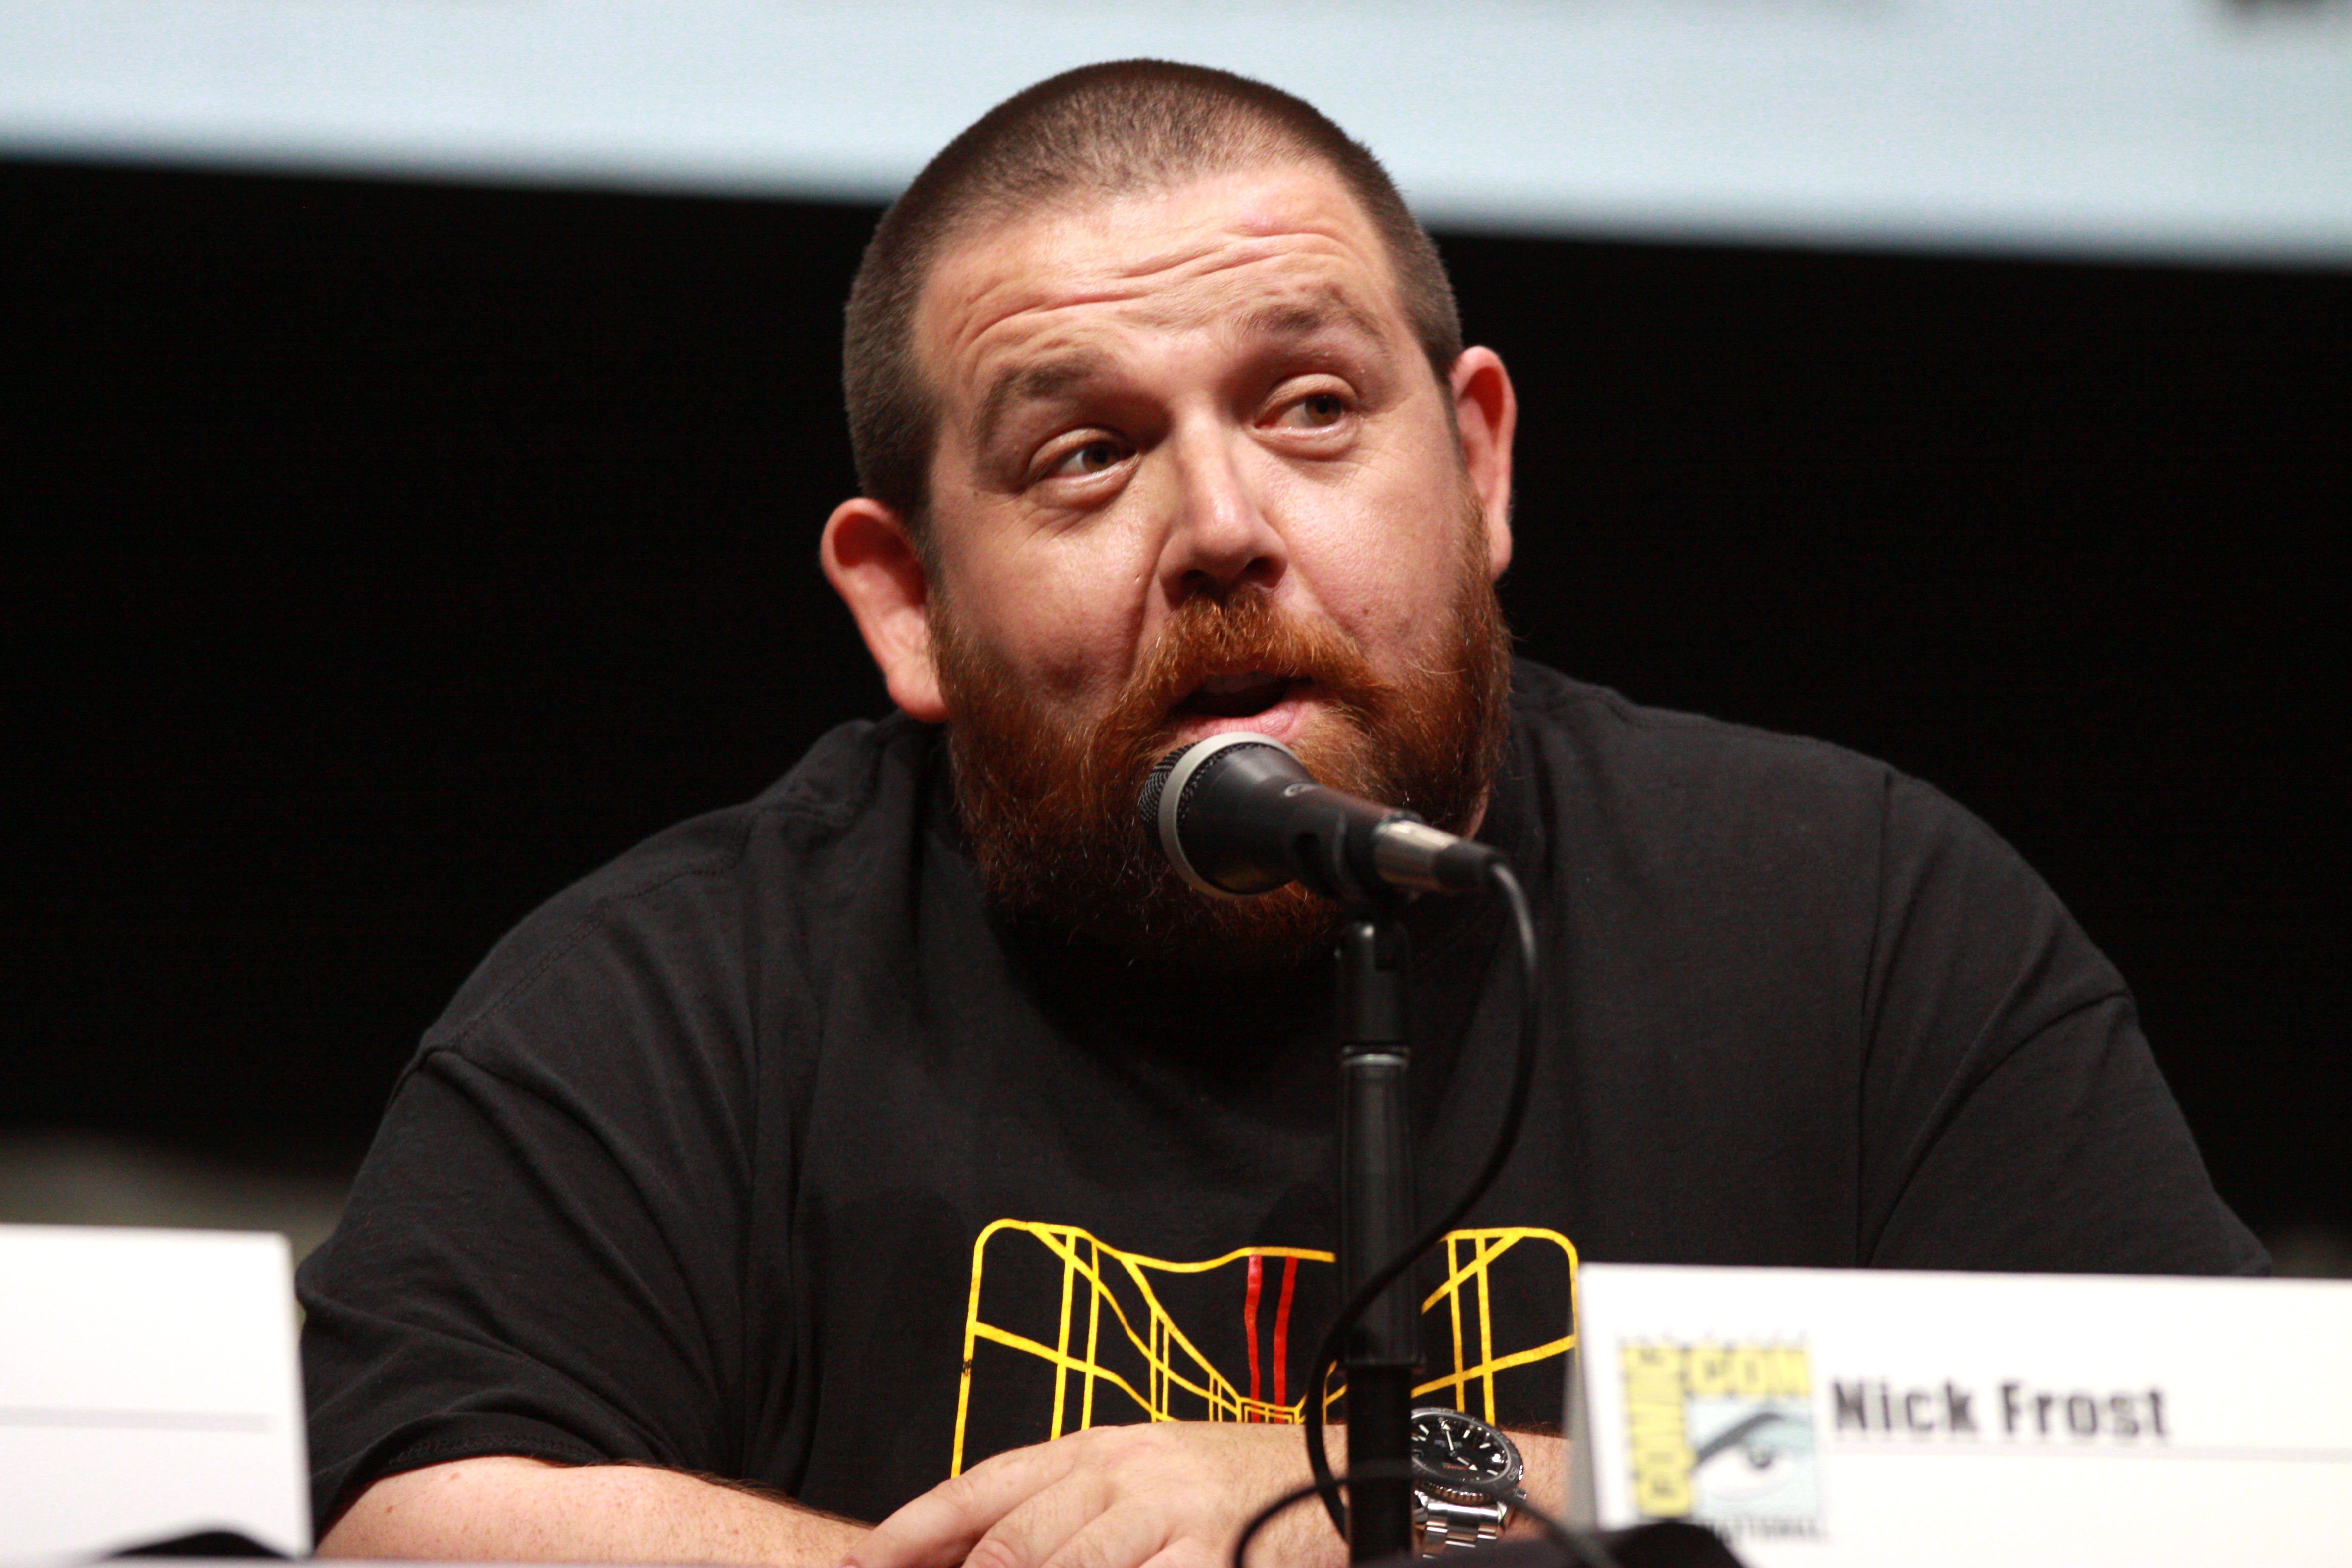 Nick Frost Background